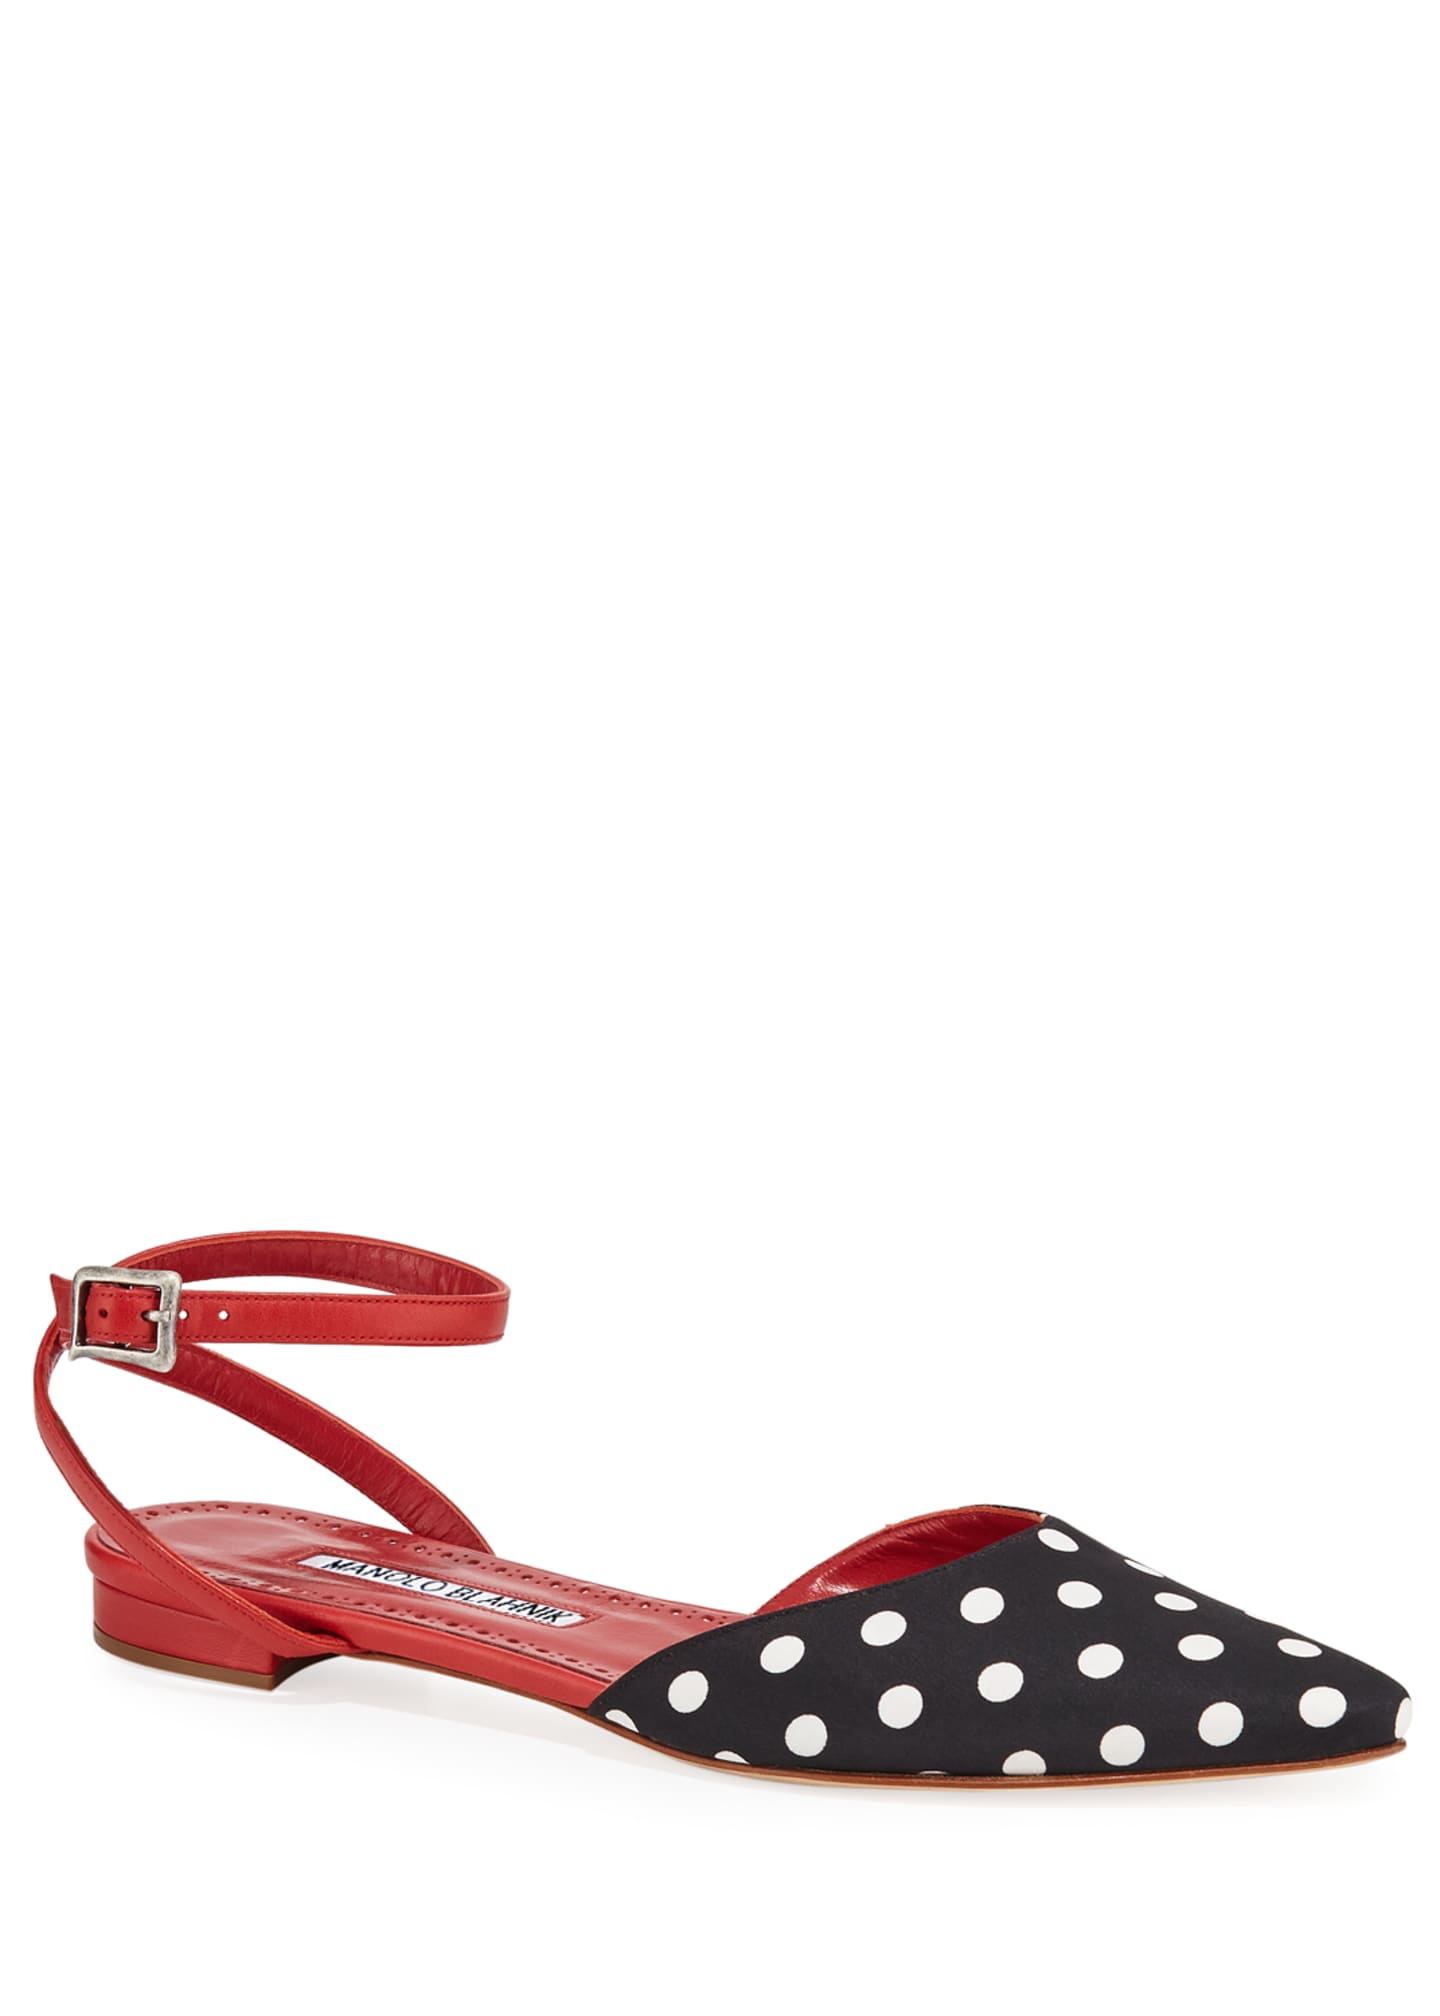 Manolo Blahnik Asenso Leather Ankle-Strap Flats